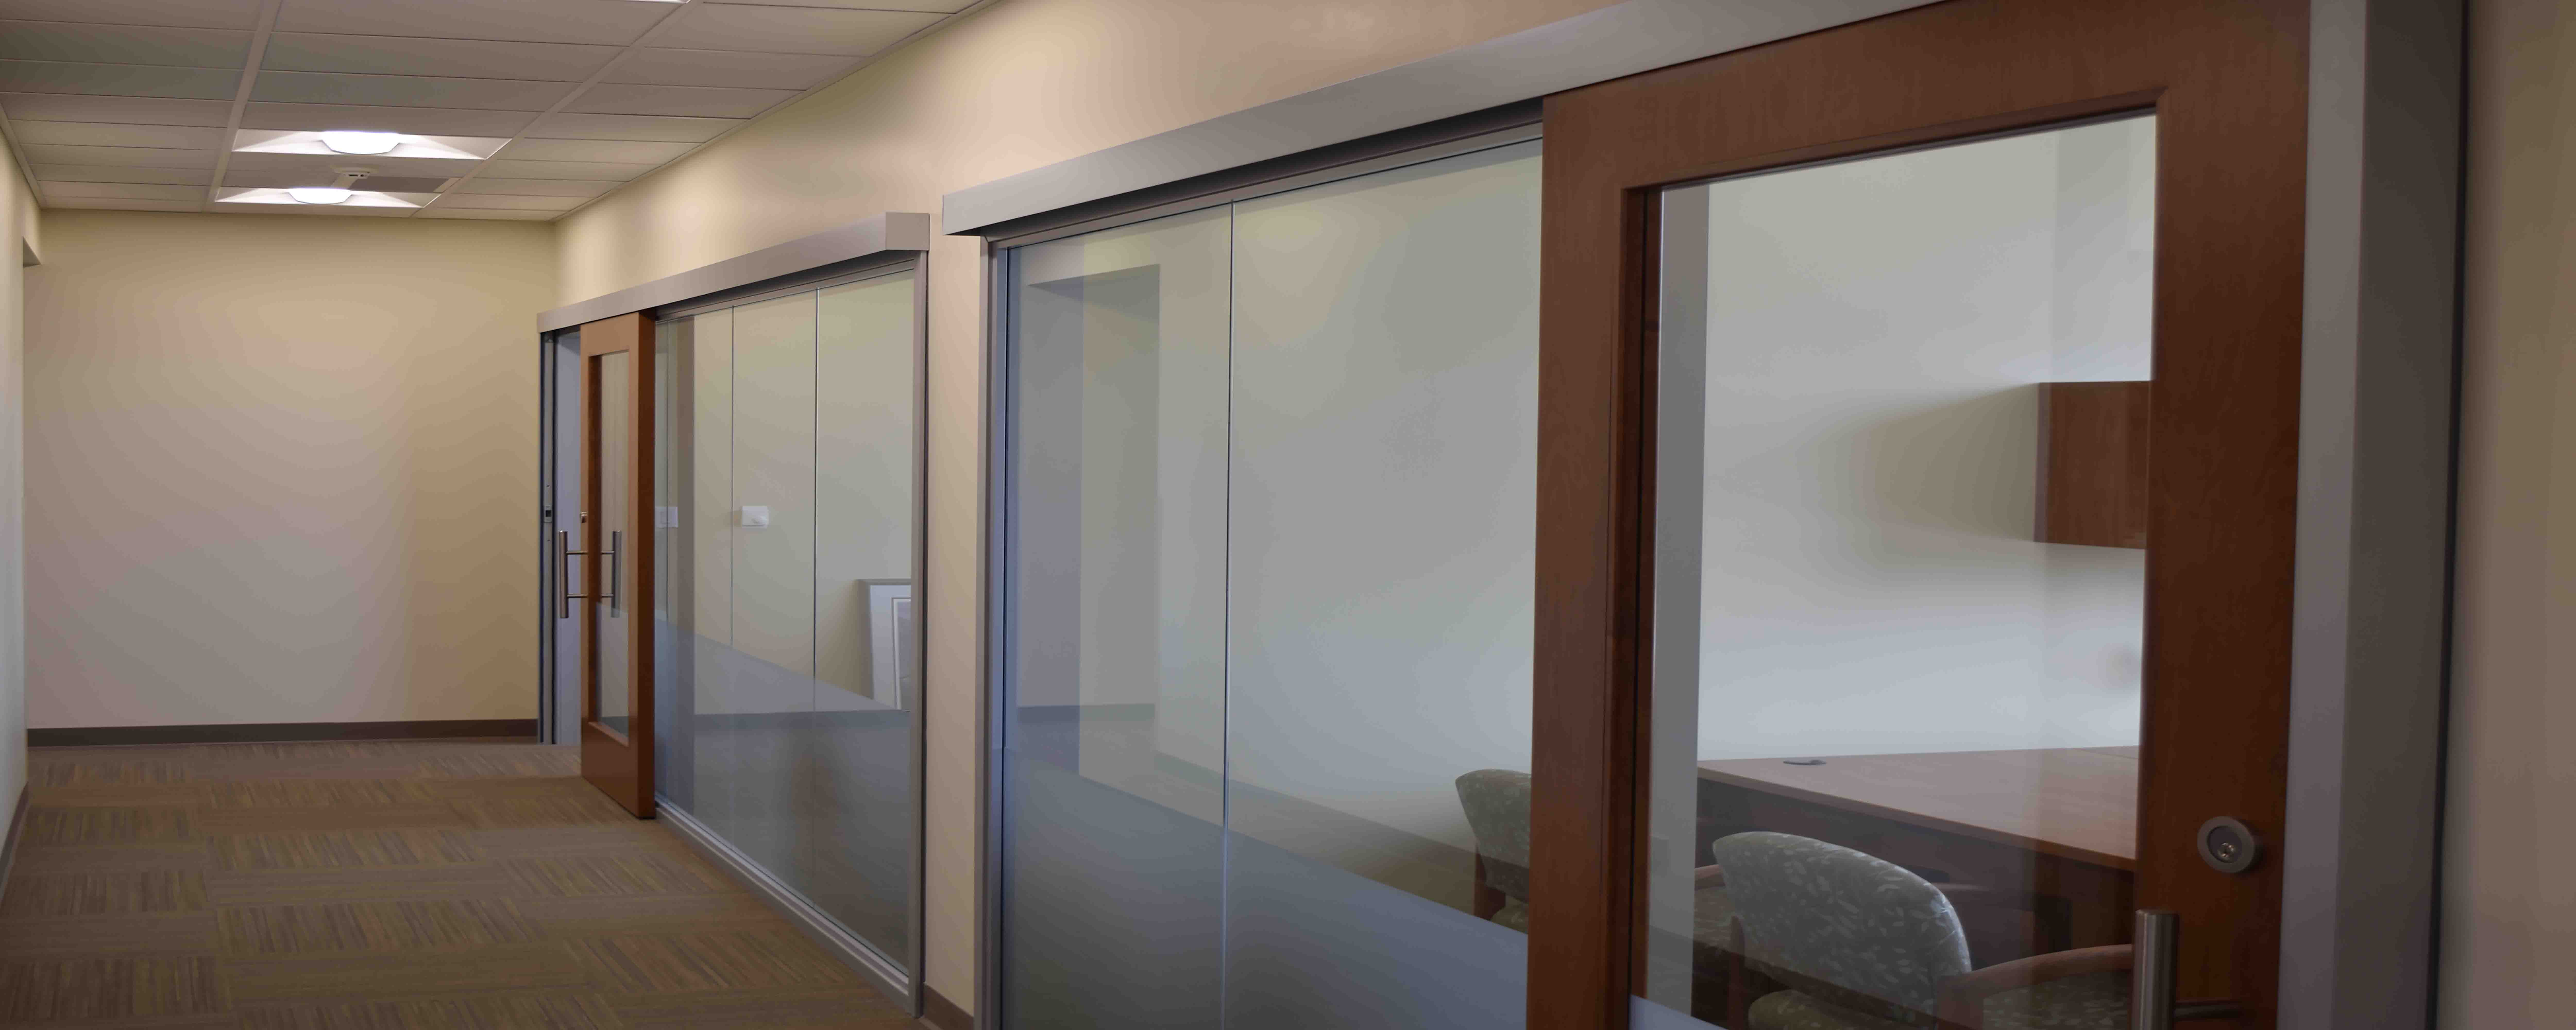 commercial-sliding-acoustic-office-barn-doorsedited